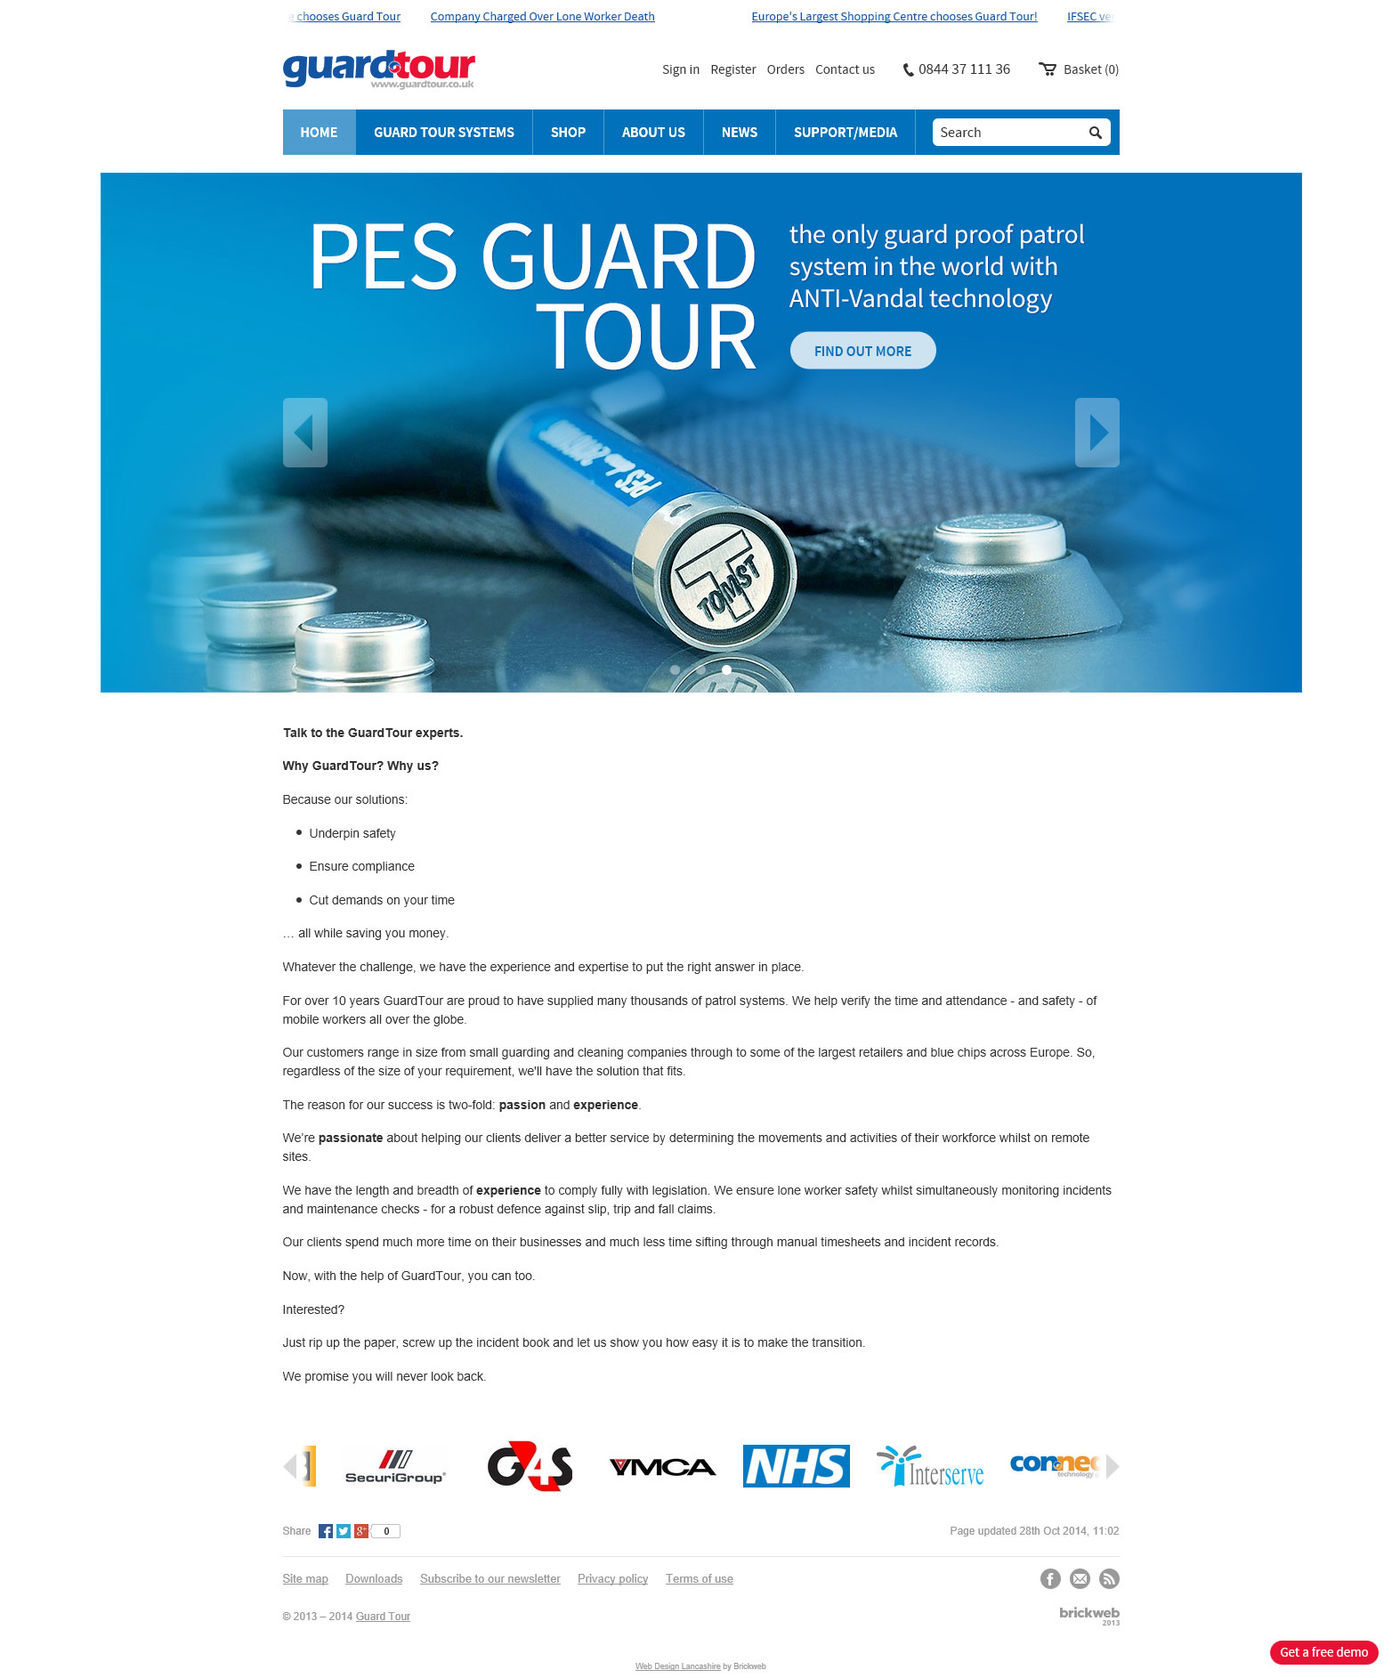 Guard Tour Home page